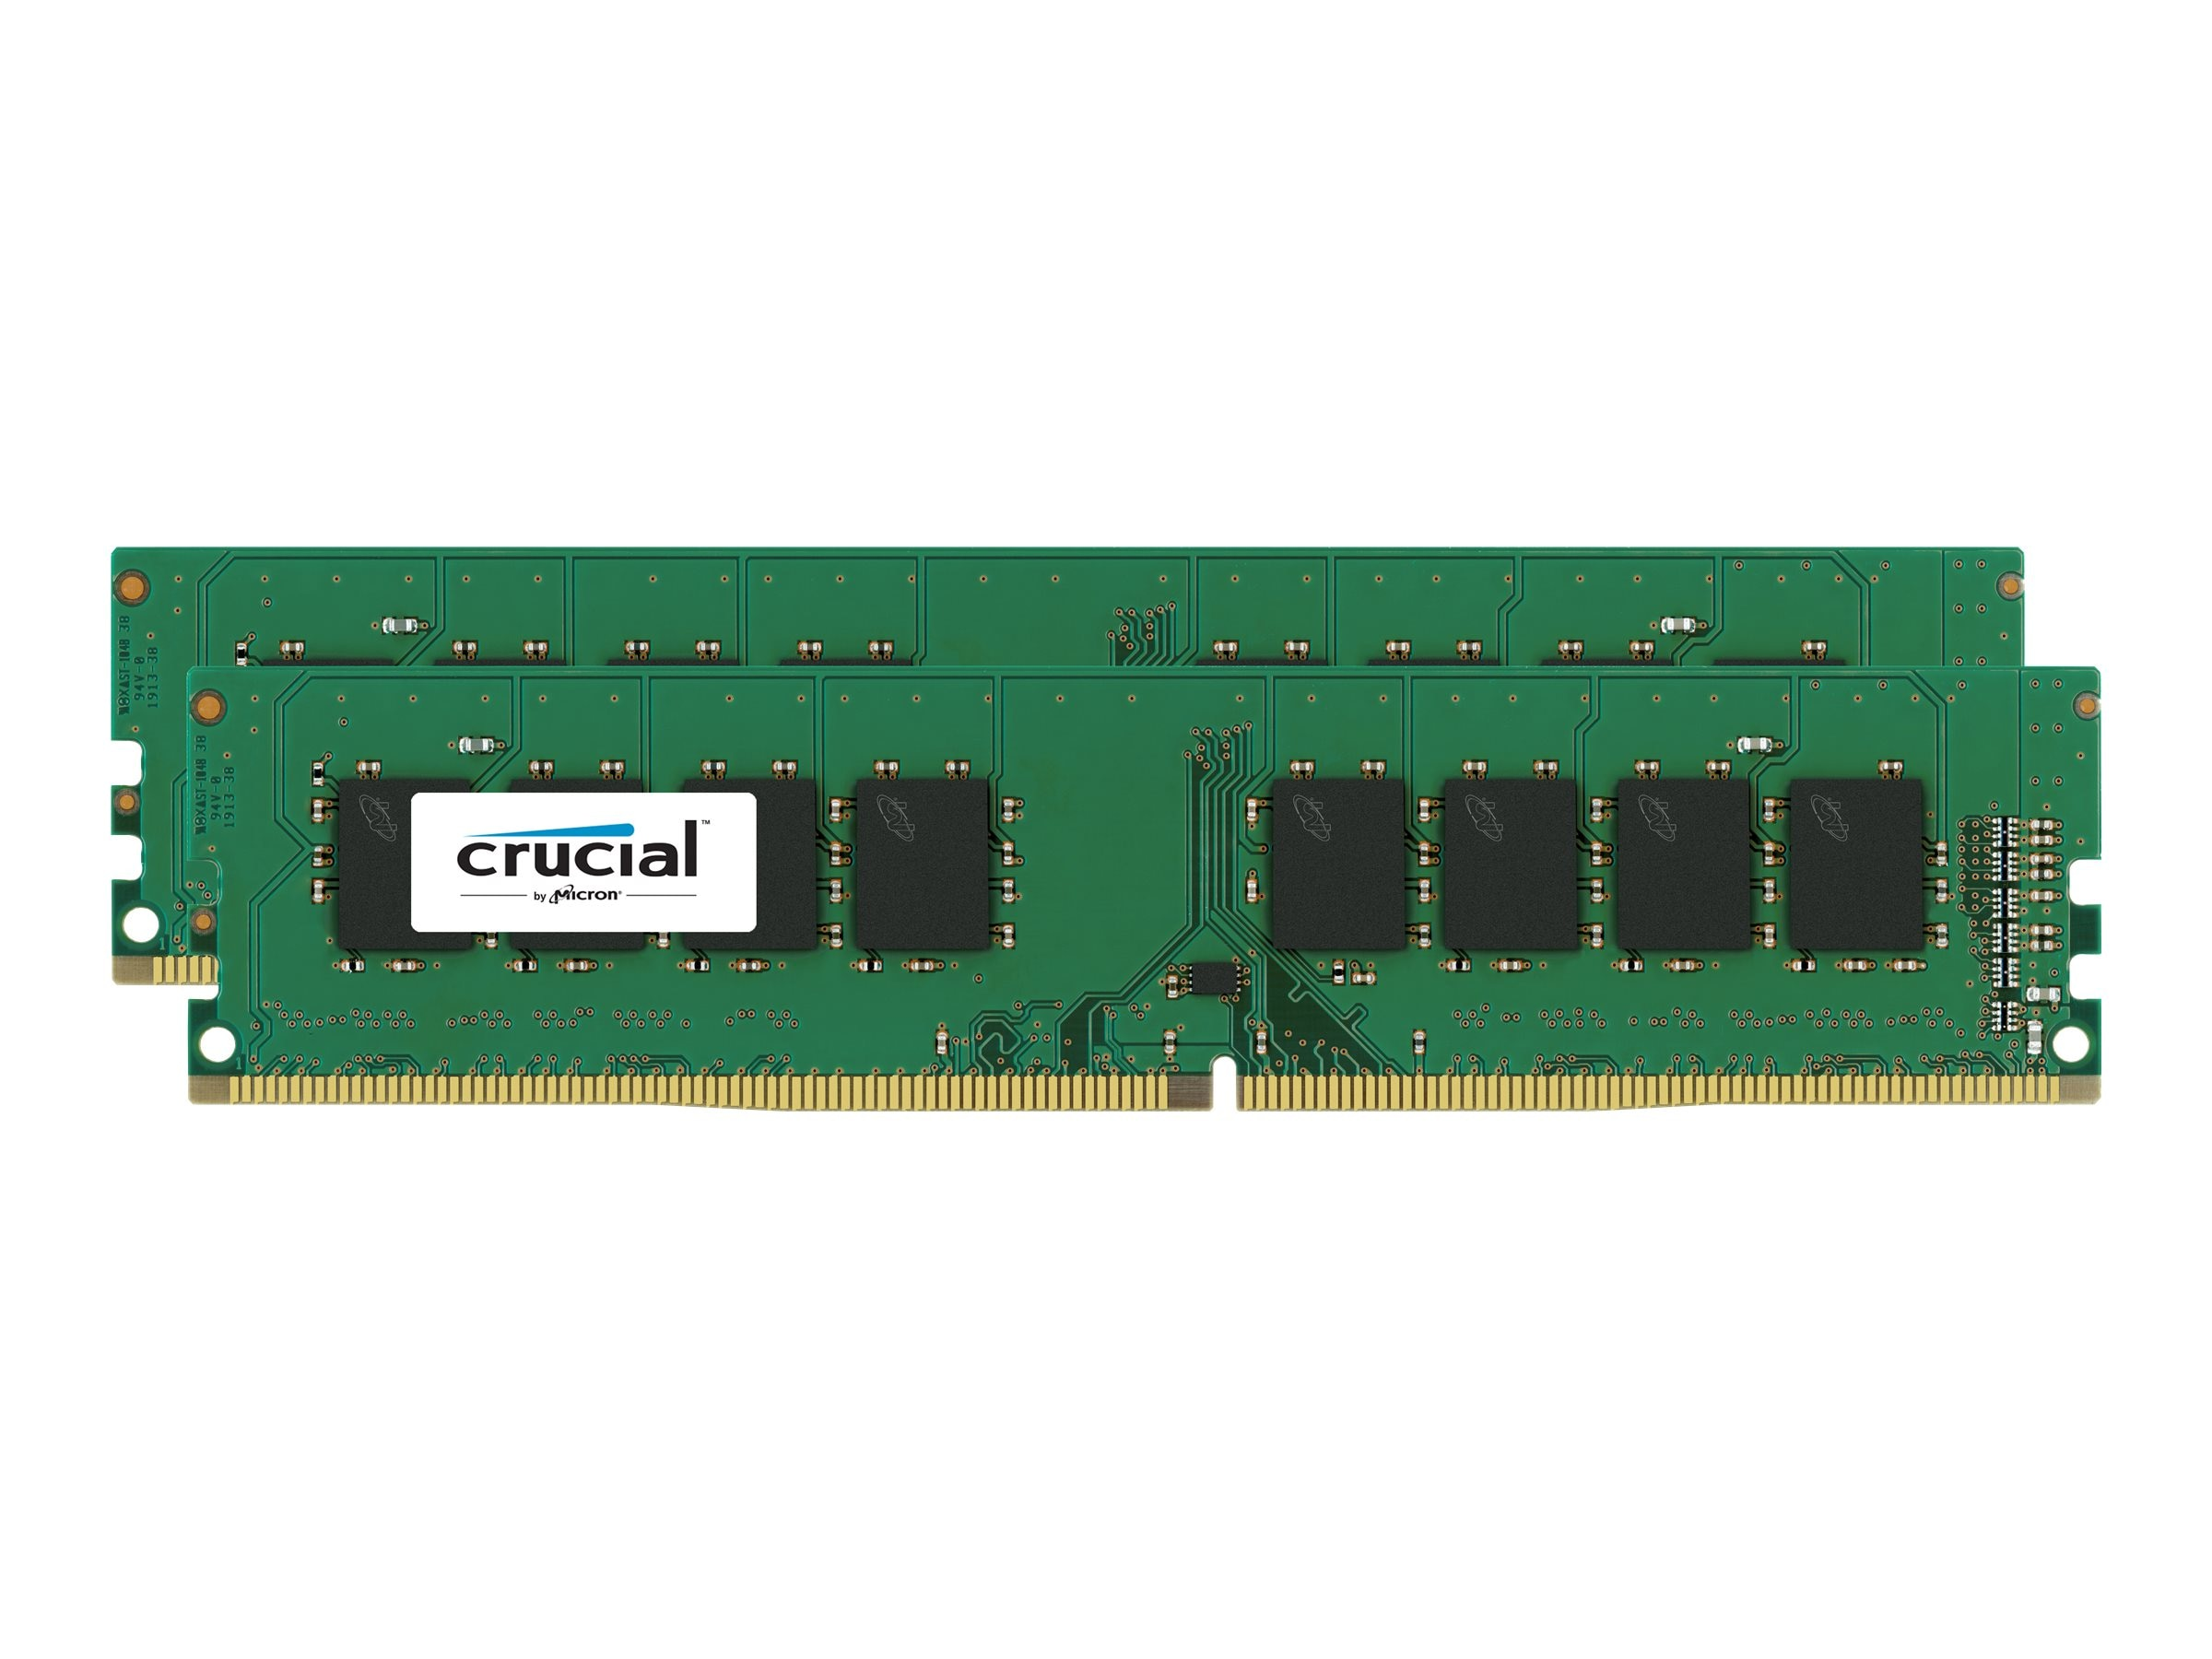 Crucial 16GB PC4-17000 288-pin DDR4 SDRAM UDIMM Kit